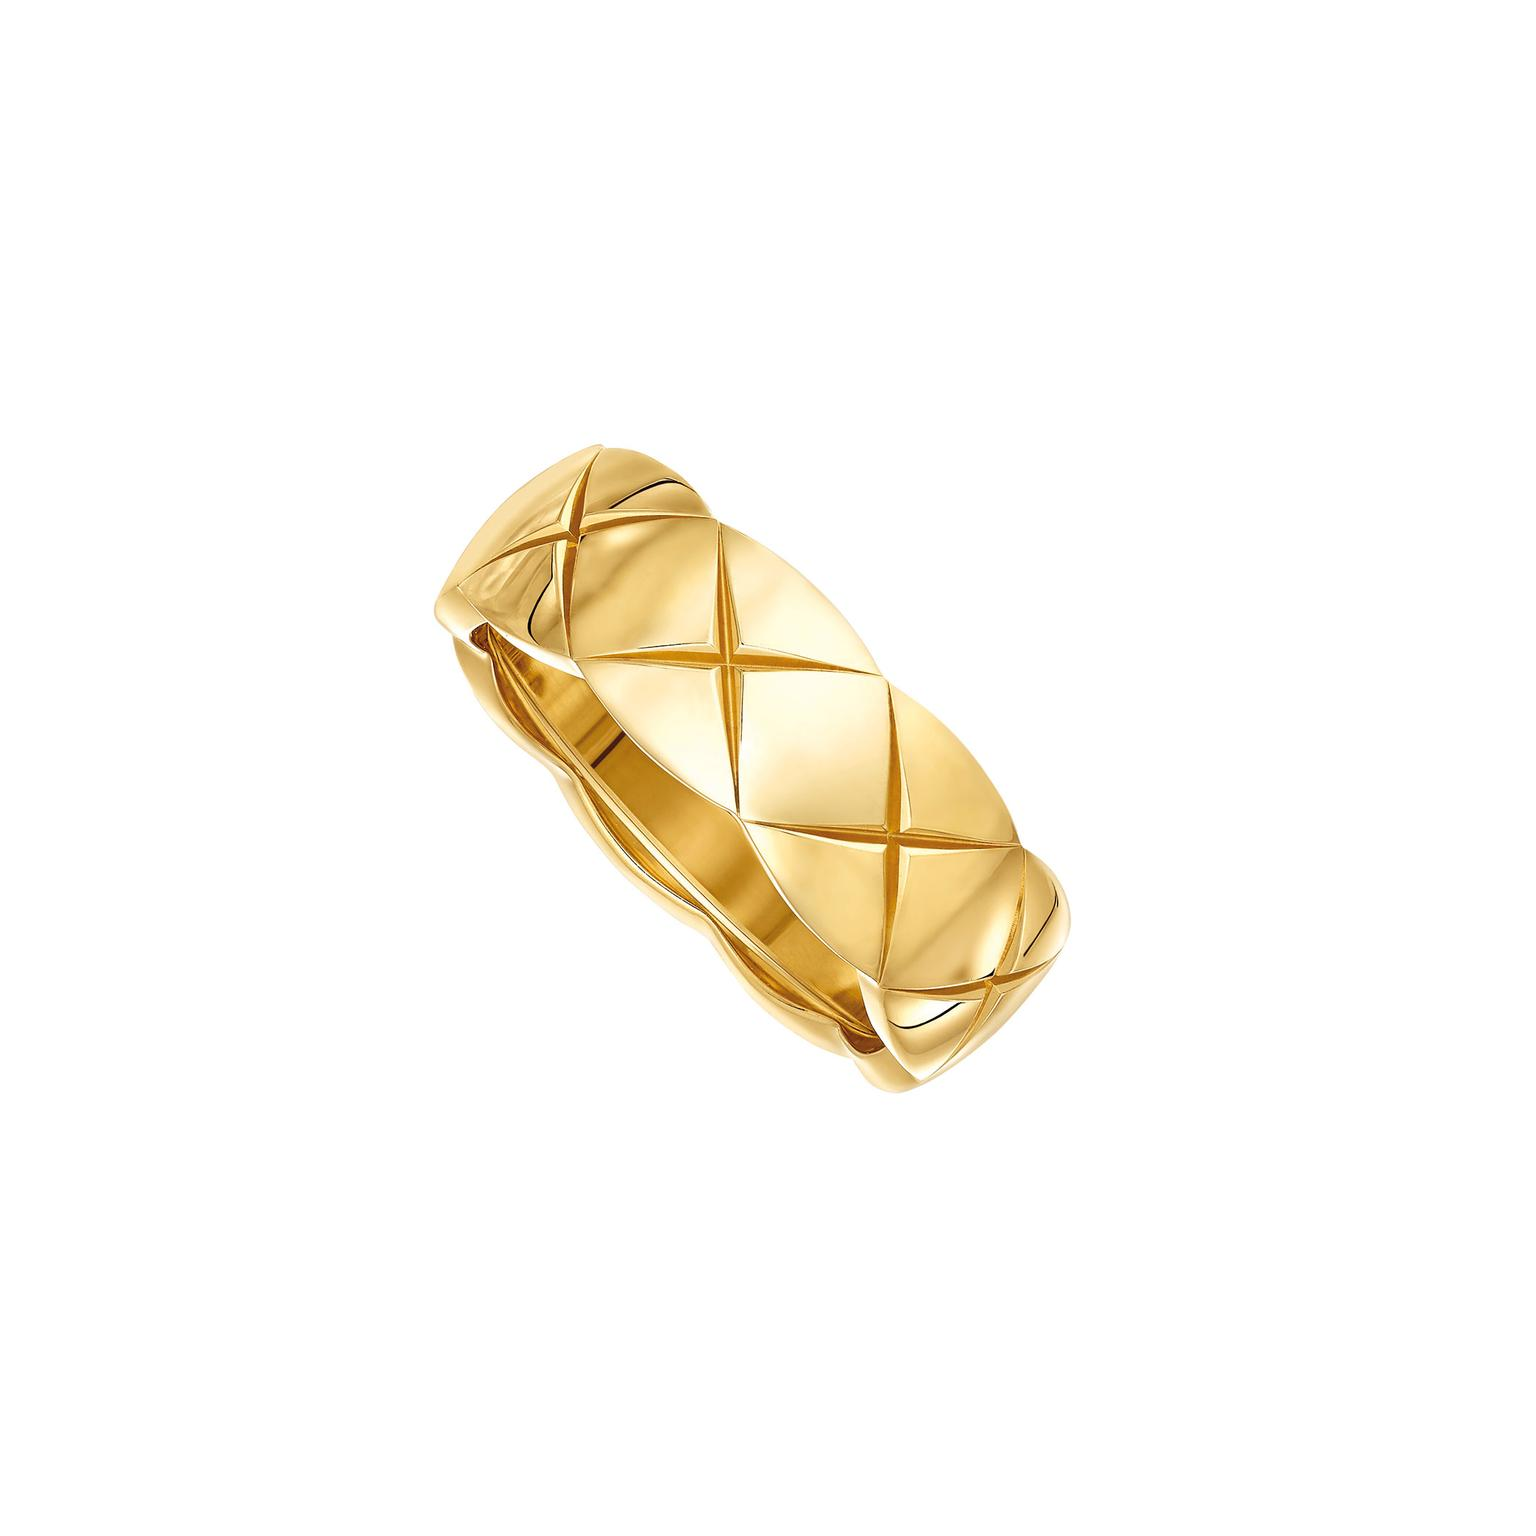 Chanel Coco Crush small 18ct yellow gold ring_zoom